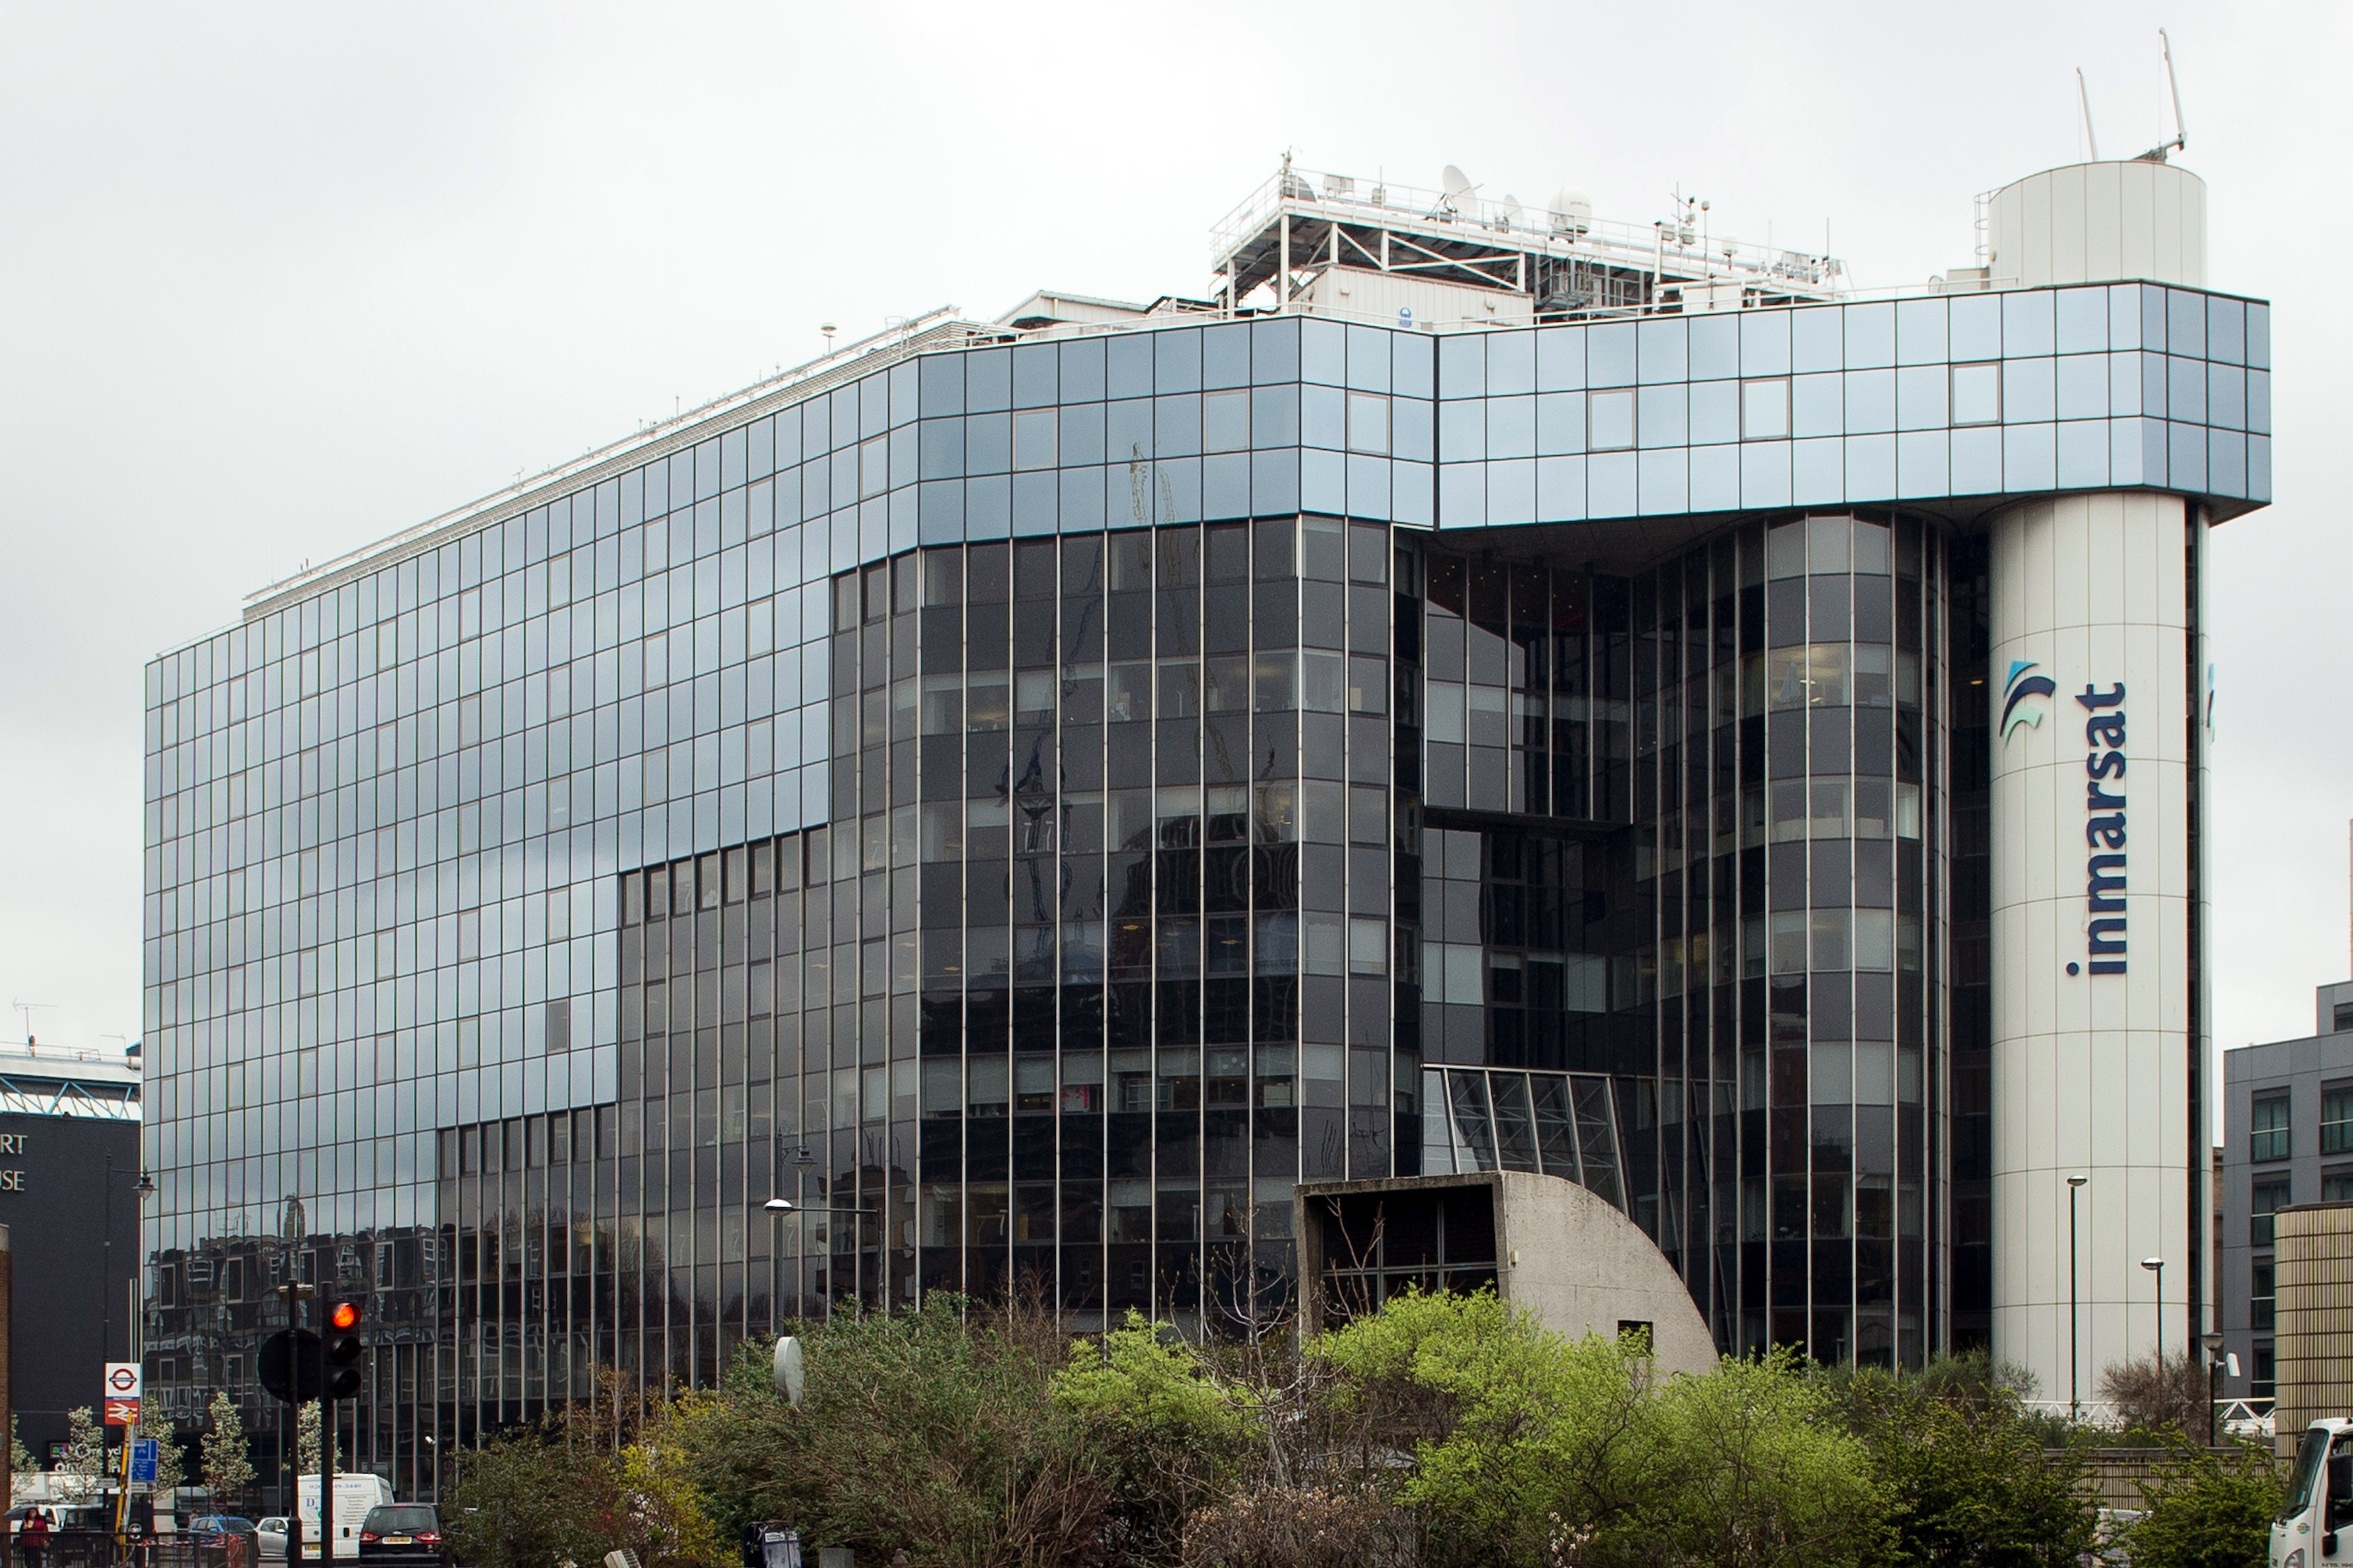 The offices of satellite operator Inmarsat in central London on March 25, 2014.